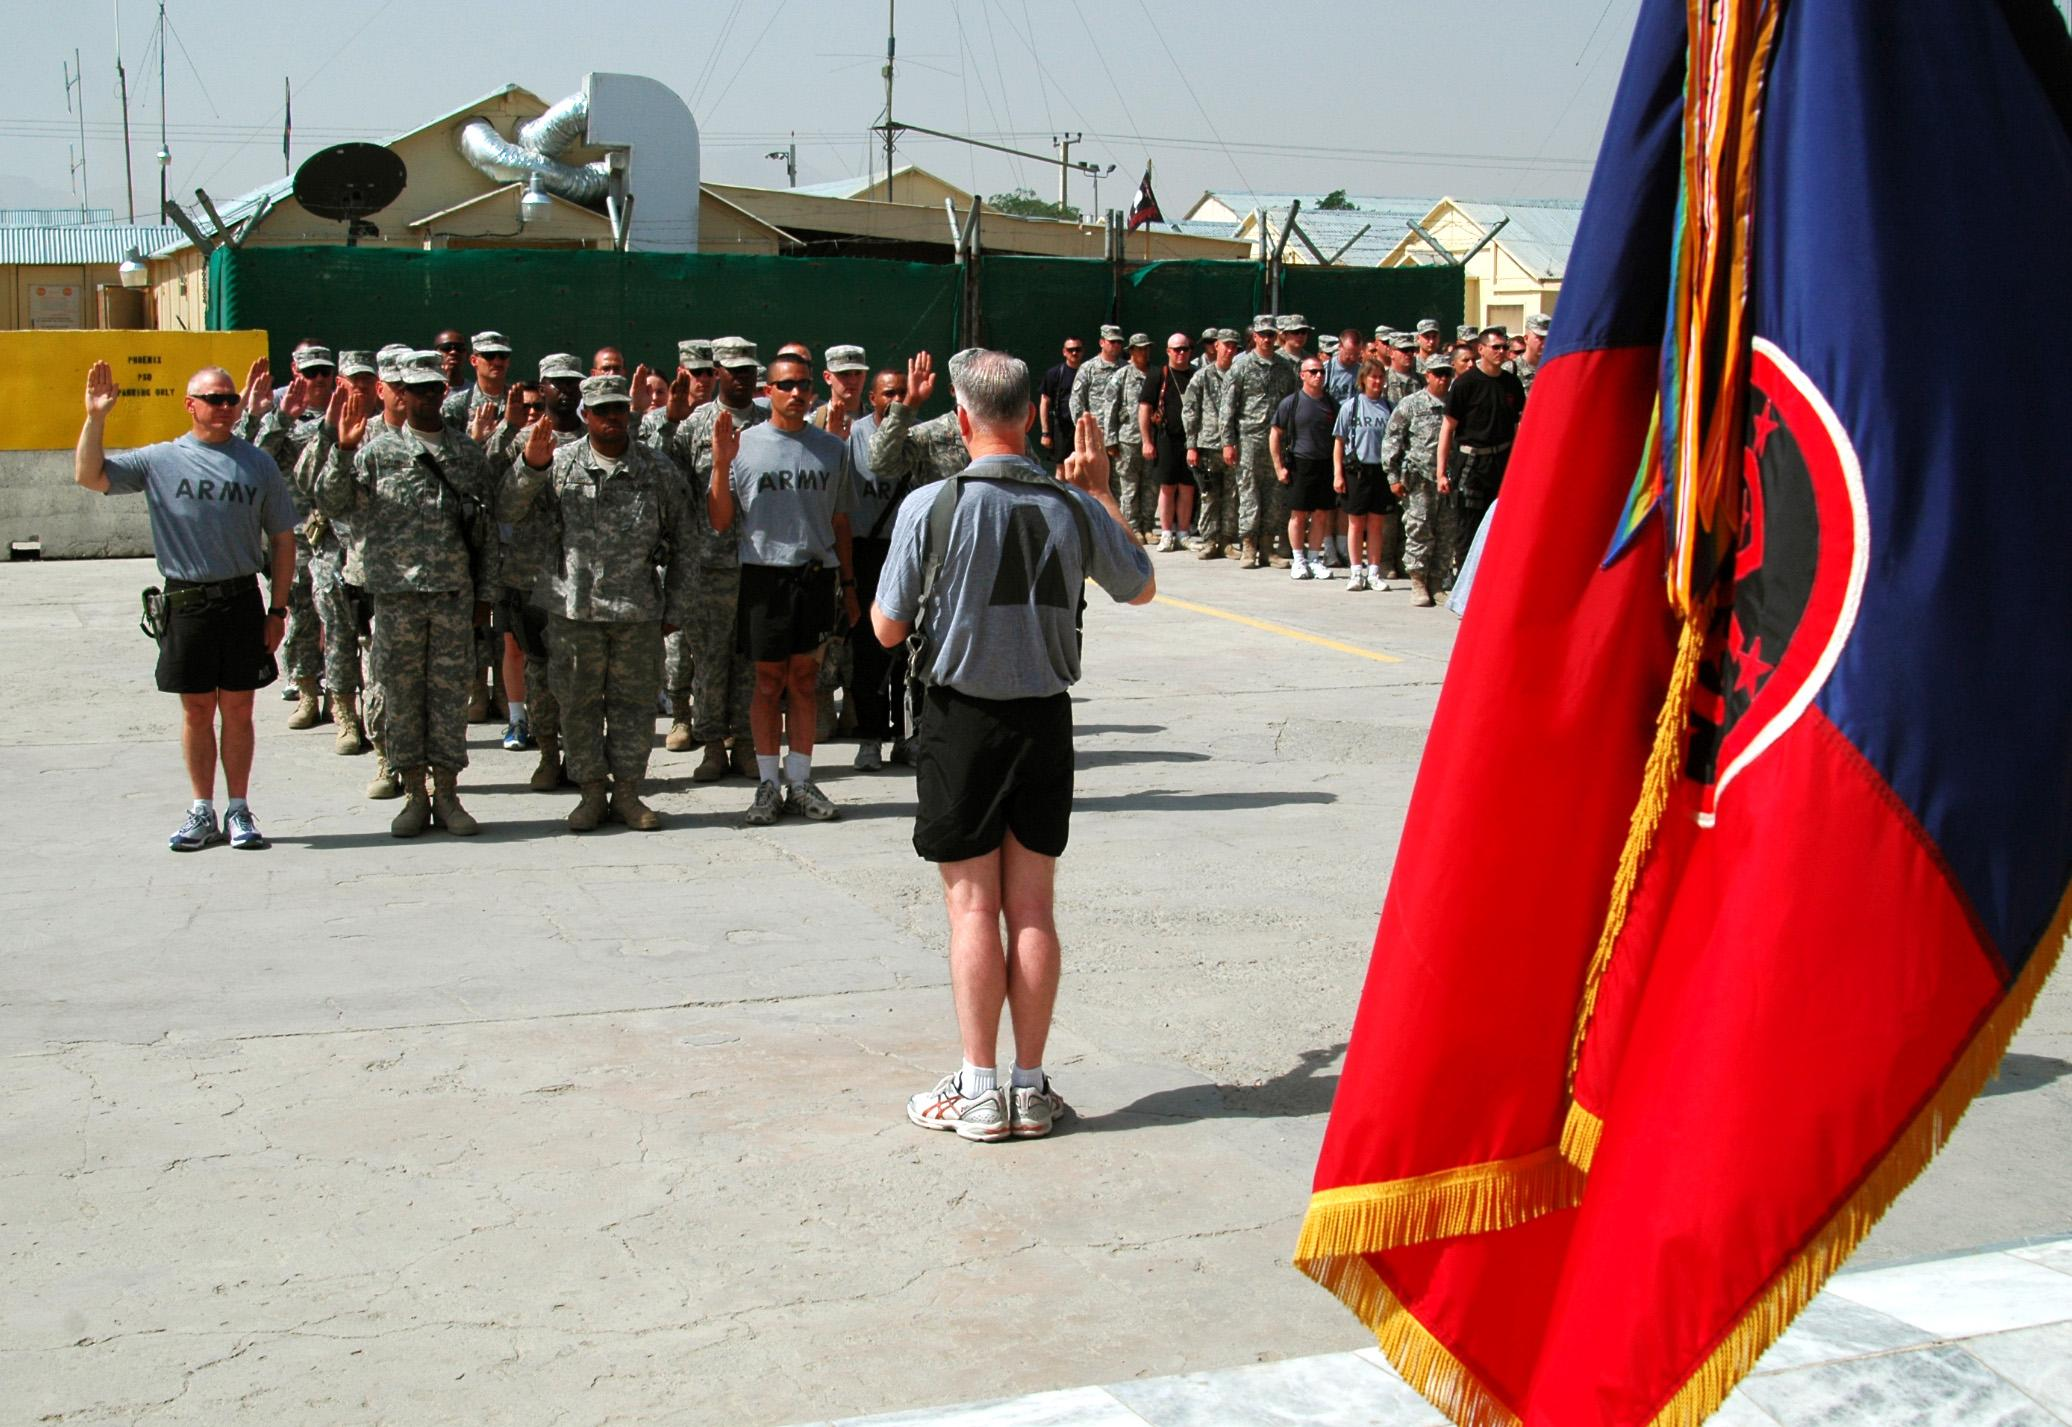 Camp%20Phoenix%20Celebrates%20July%204th%20With%20Re-enlistment%20Ceremony